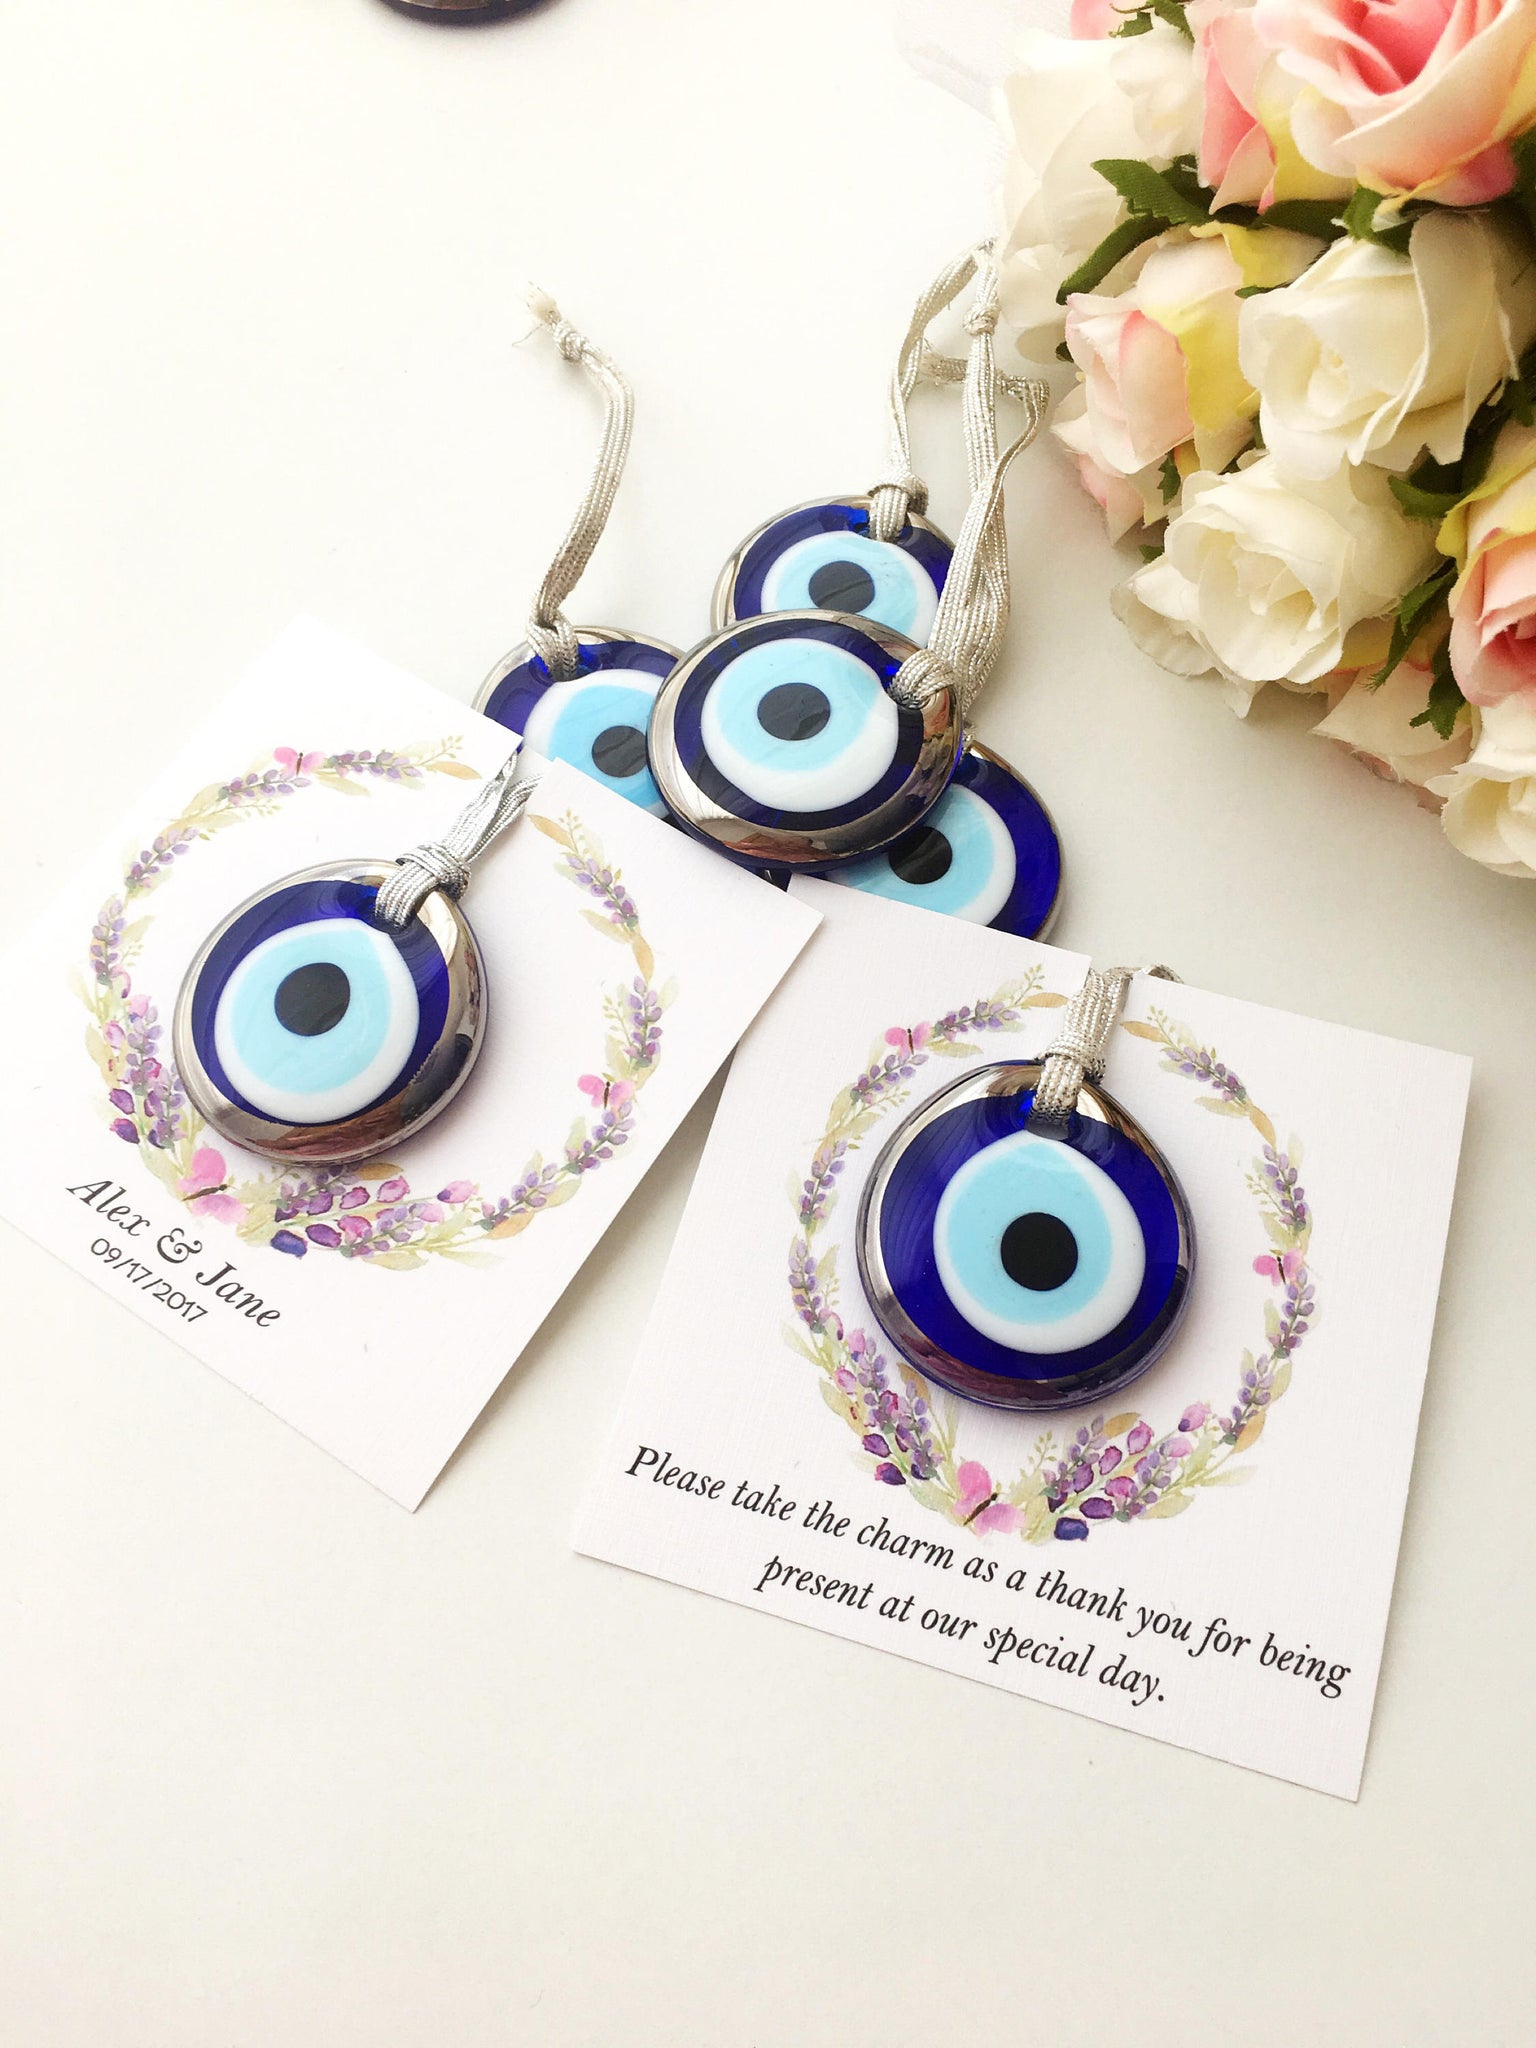 Wedding favors for guest, silver evil eye charms, nazar boncuk ...